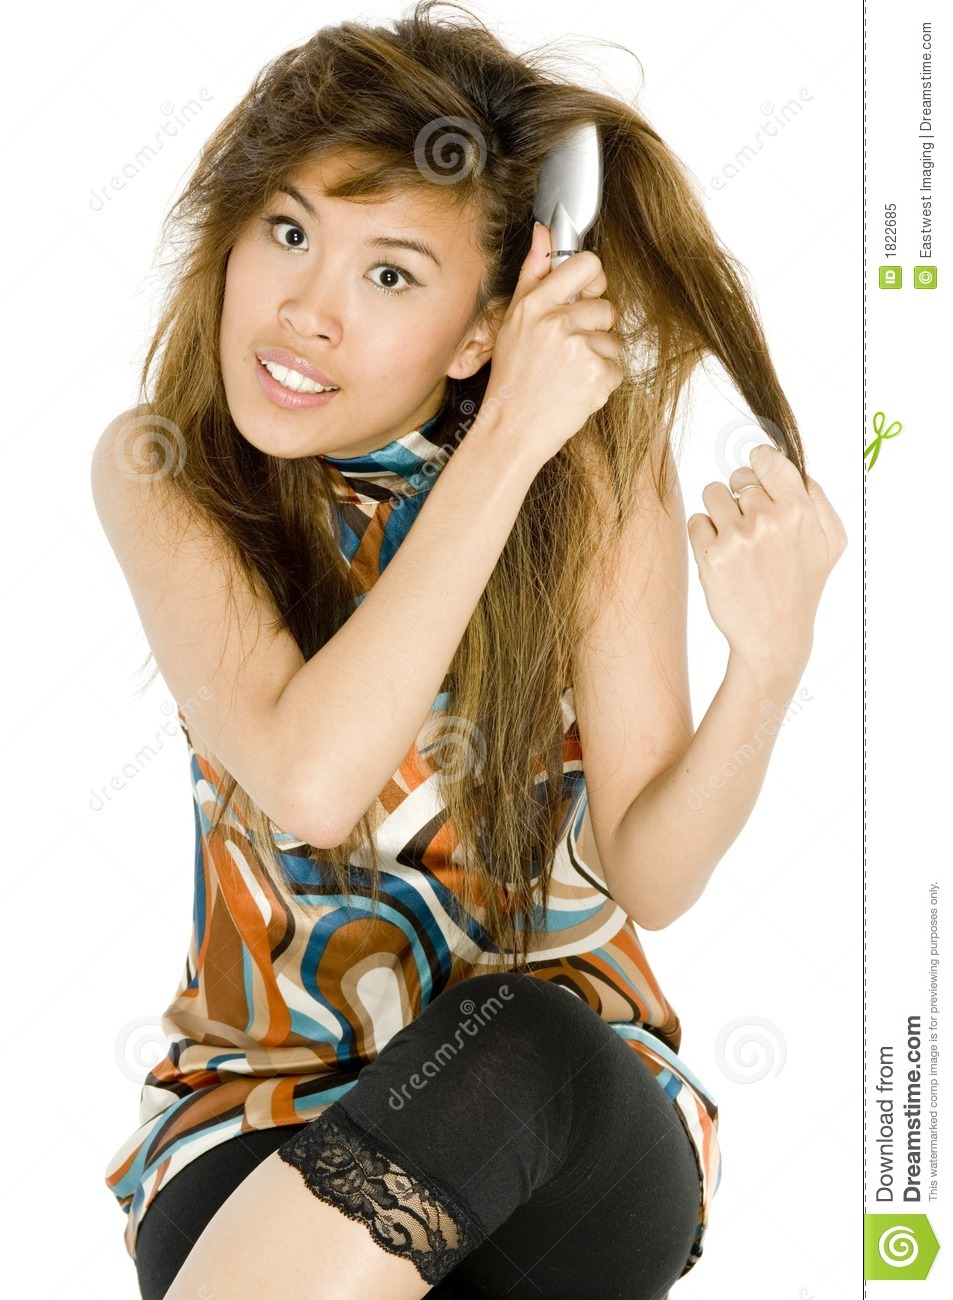 Tangled Hair Royalty Free Stock Photo   Image  1822685